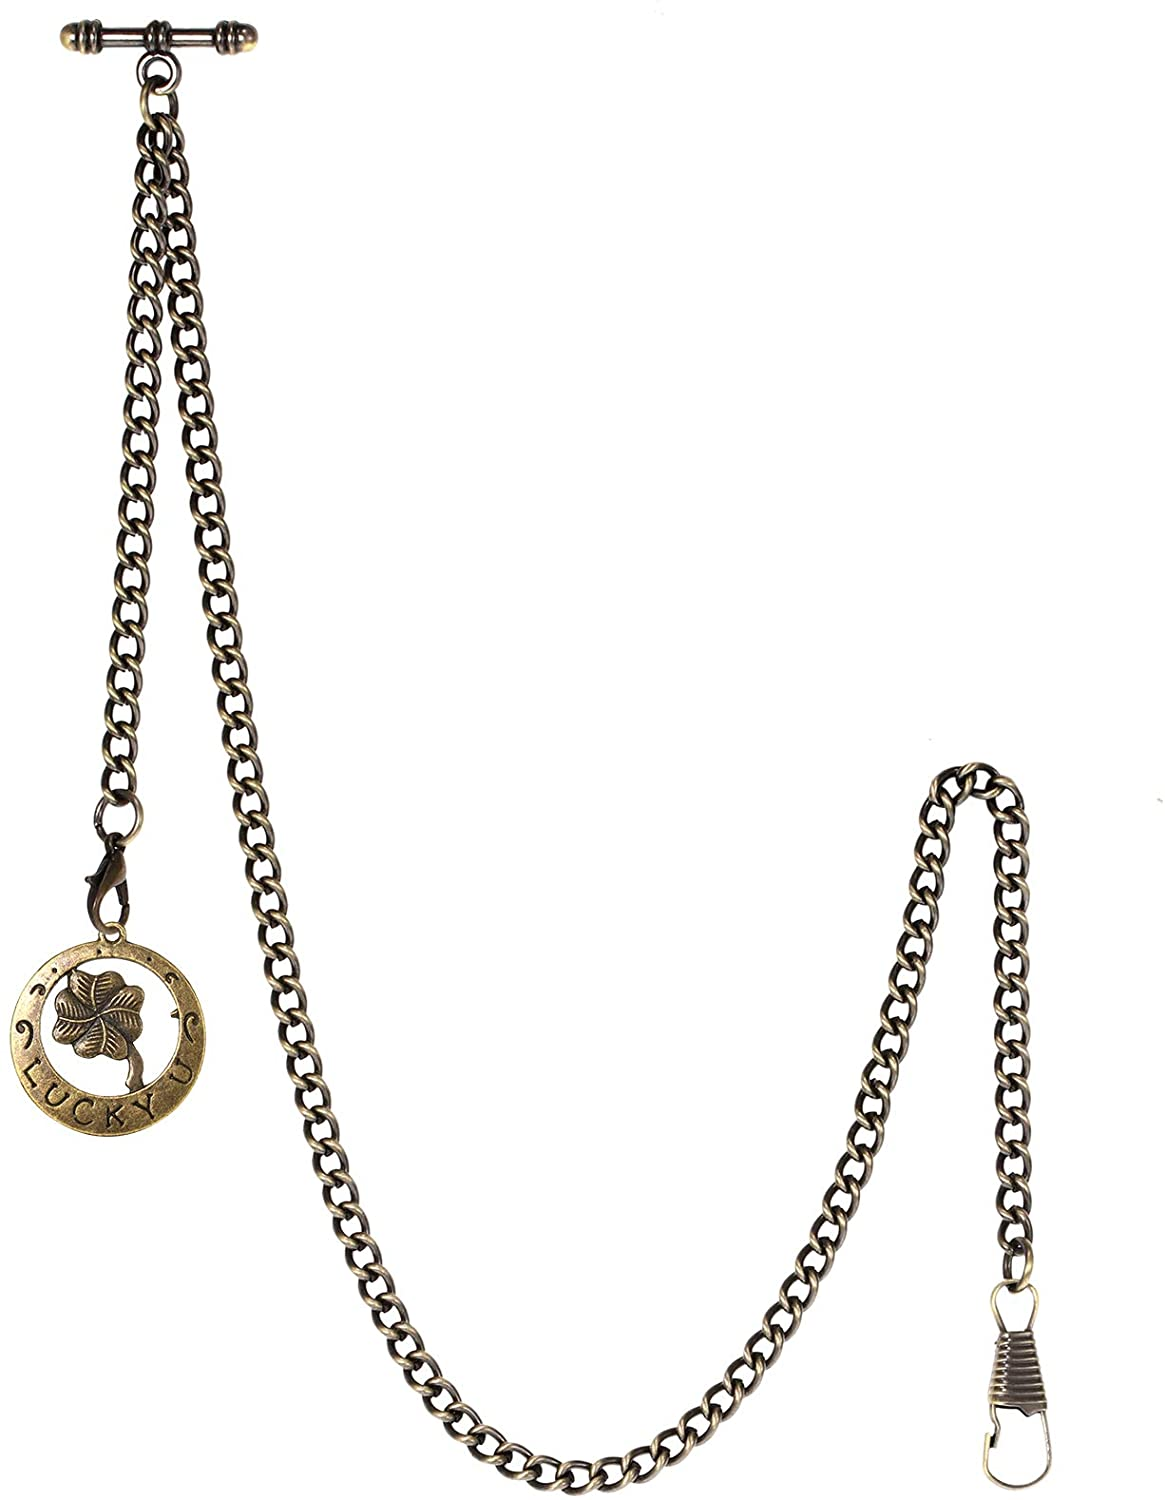 TREEWETO Men's Albert Chain Pocket Watch Curb Link Key Chain 2 Hooks with Antique Lucky Four-Leaf Clover Pendant Design Charm Fob T Bar